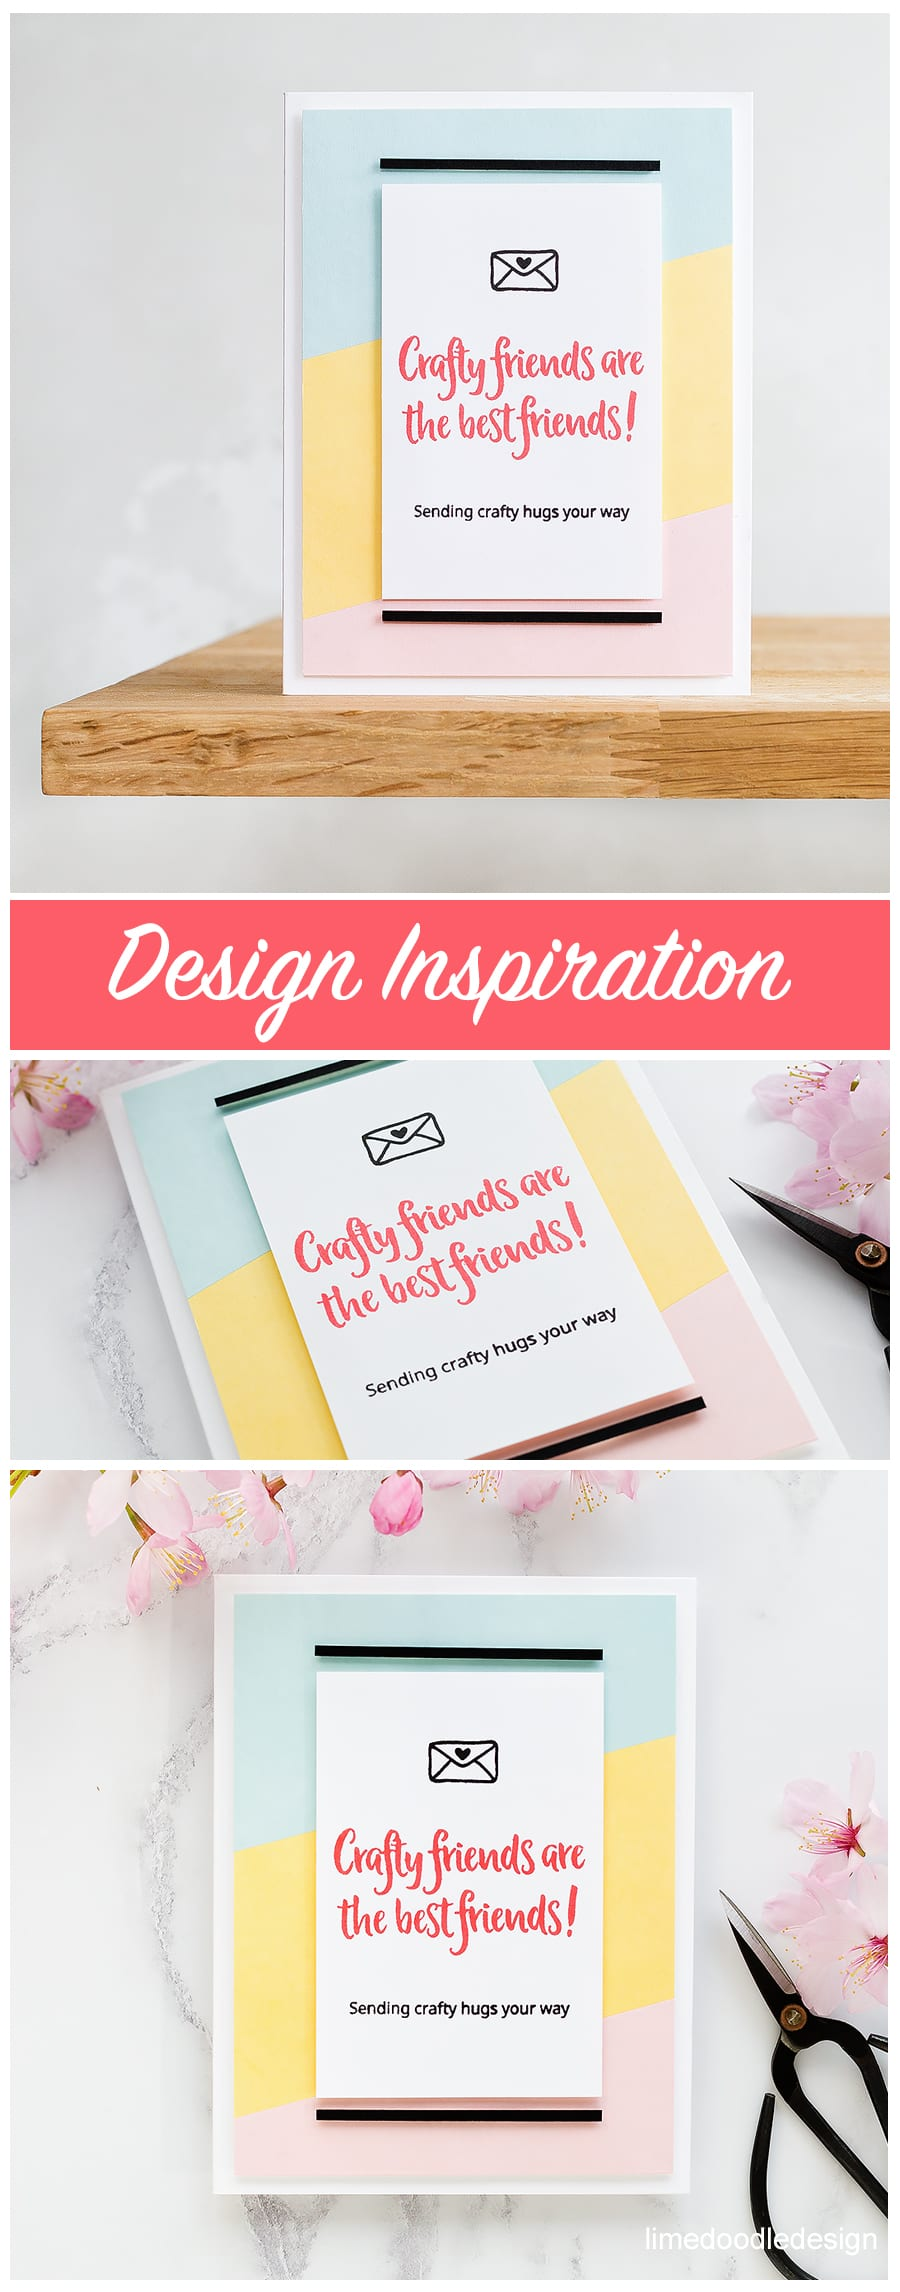 An email was the design inspiration for this crafty friends handmade card by Debby Hughes. Find out more here: http://limedoodledesign.com/2018/04/design-inspiration/